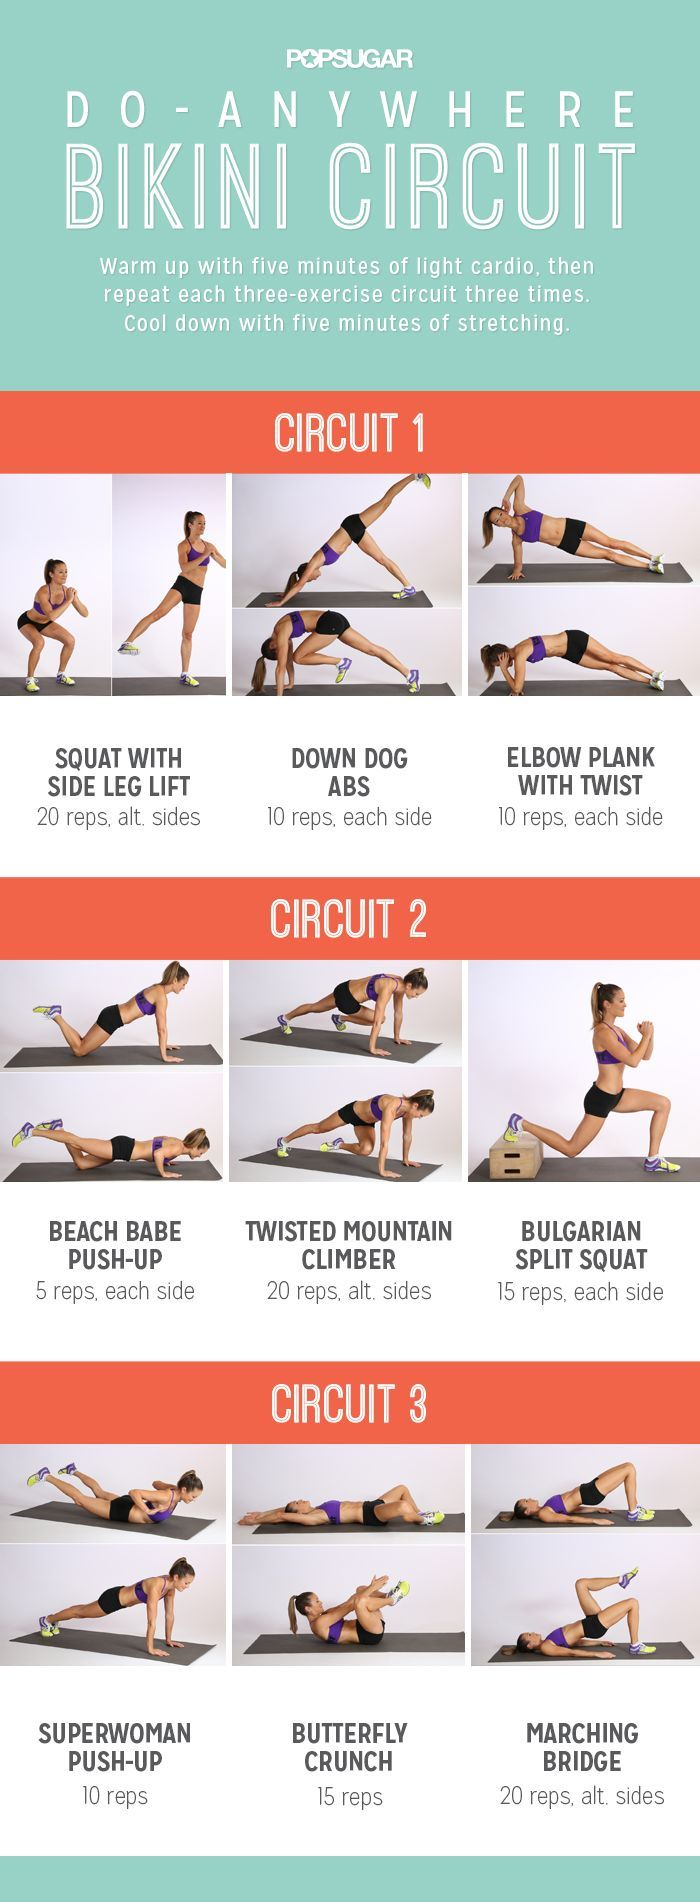 Printable, Do-Anywhere Bikini Workout